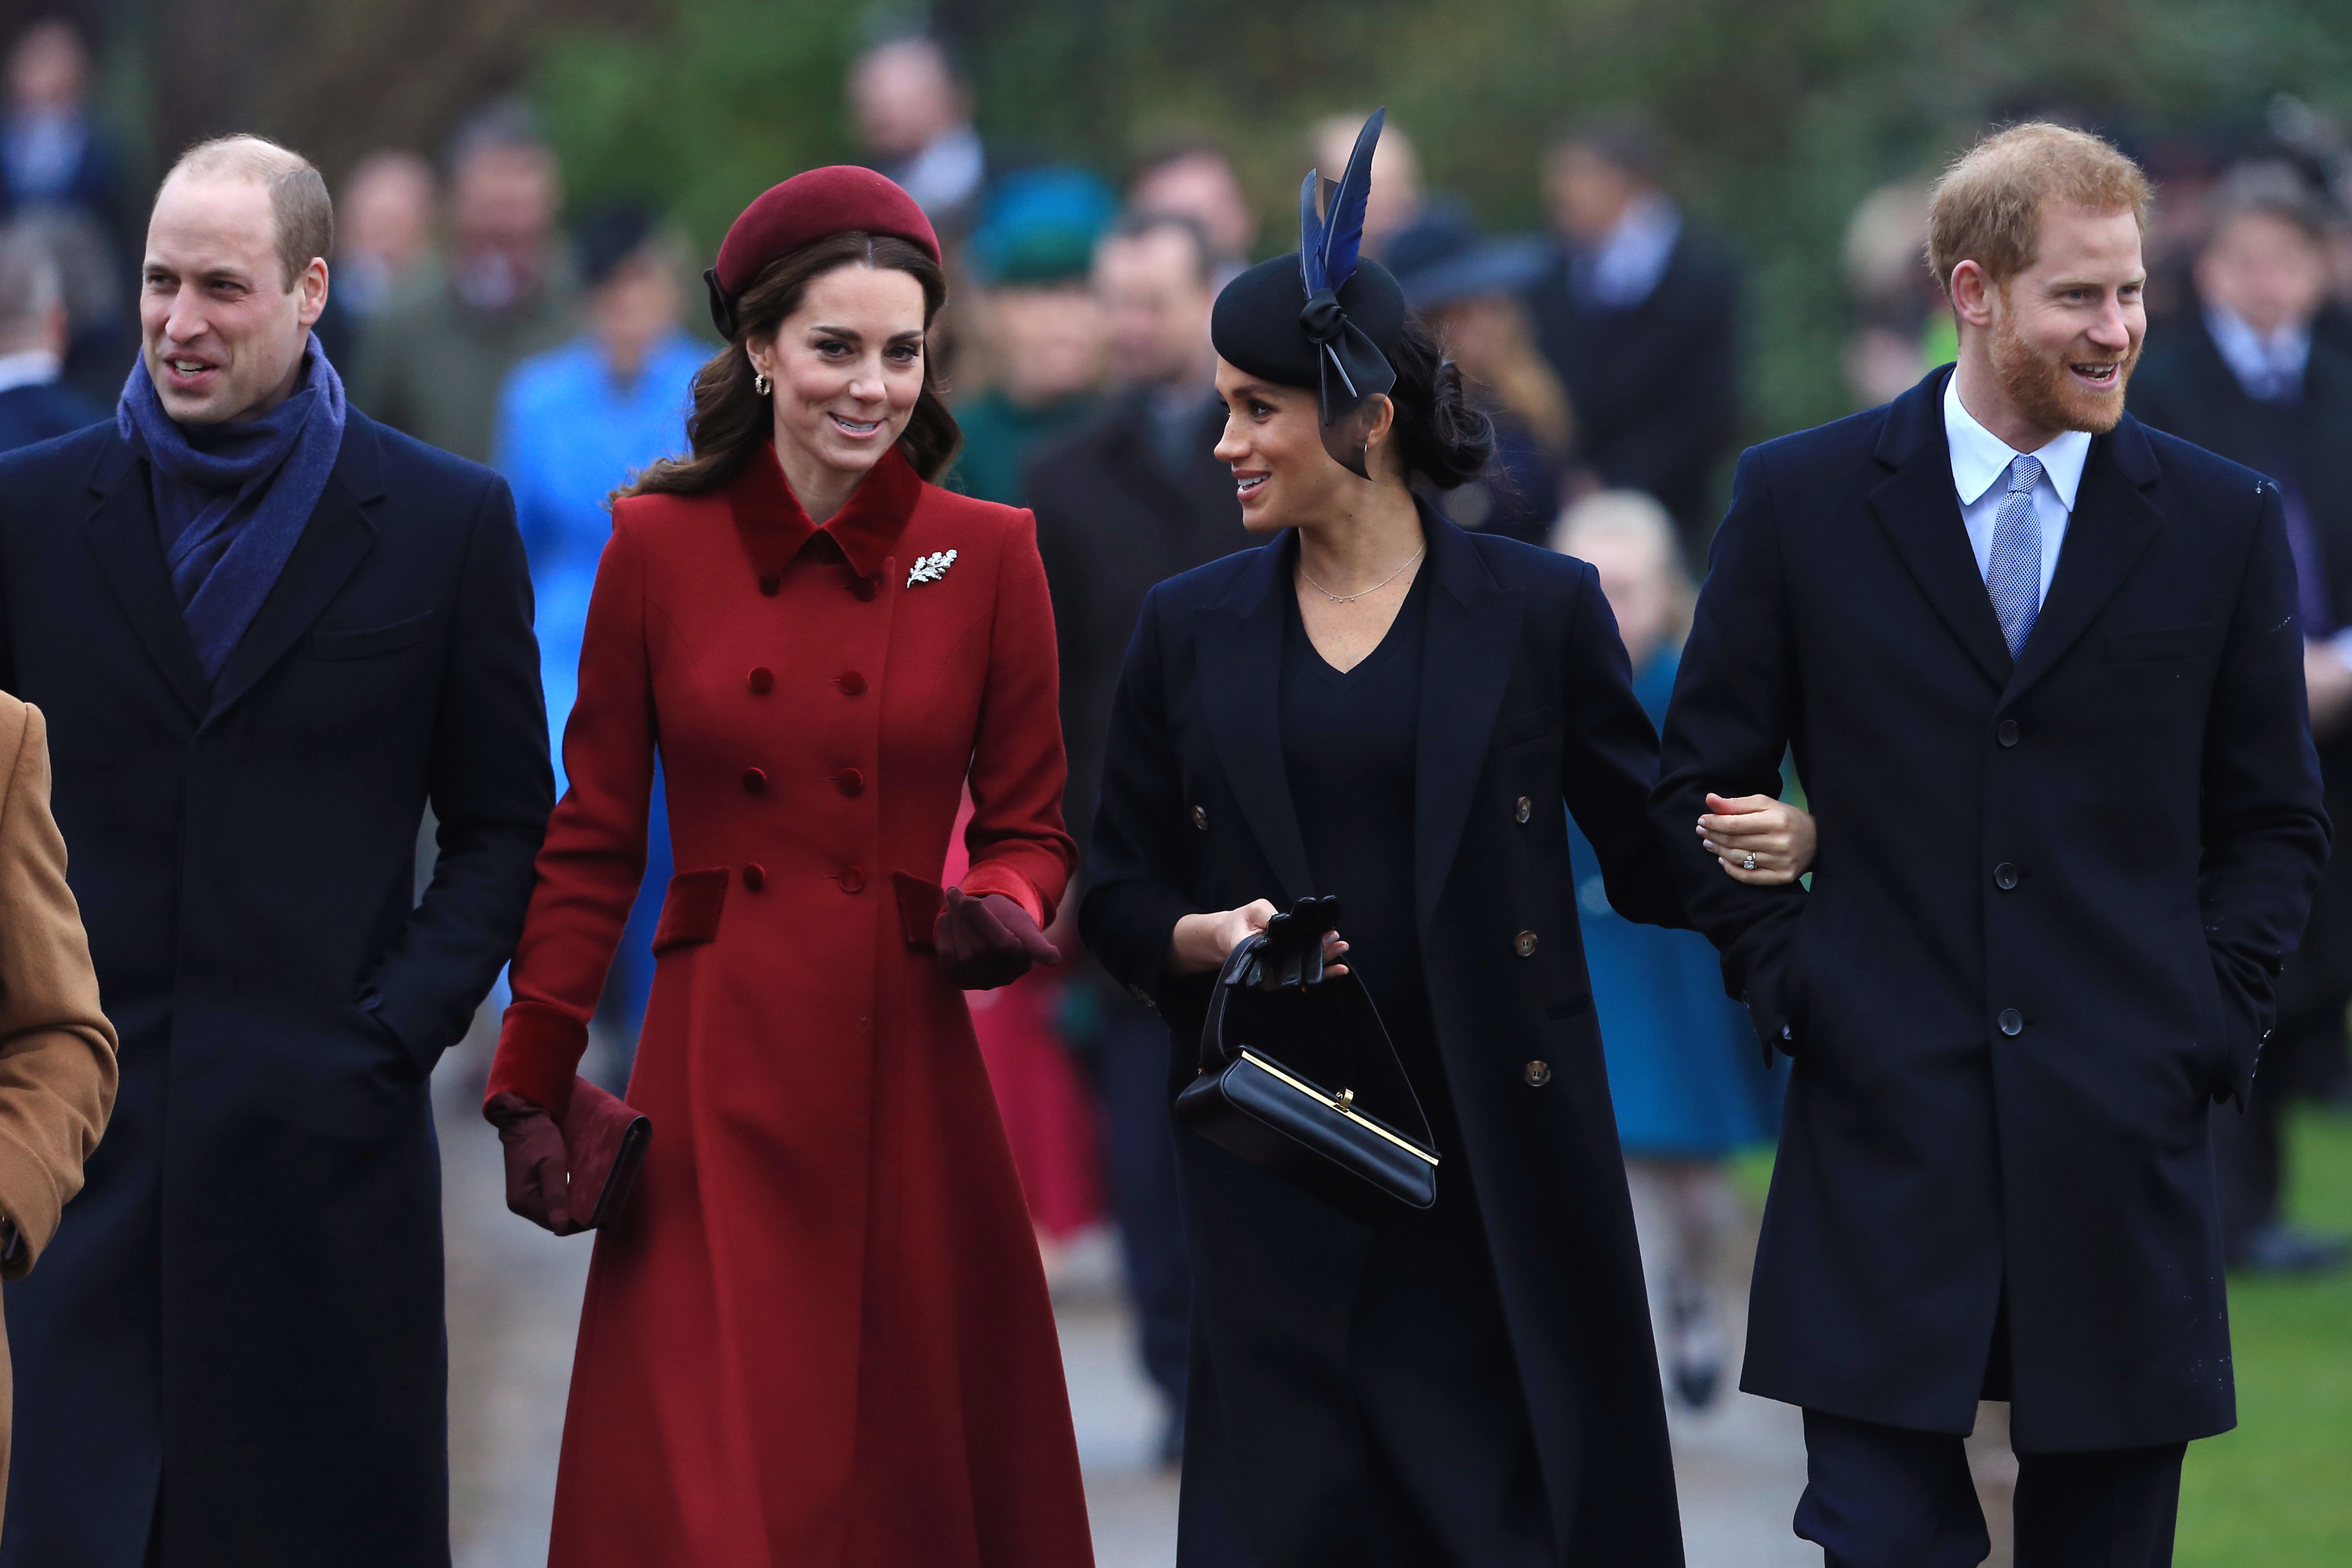 Harry, Meghan, Harry and William walk together outside